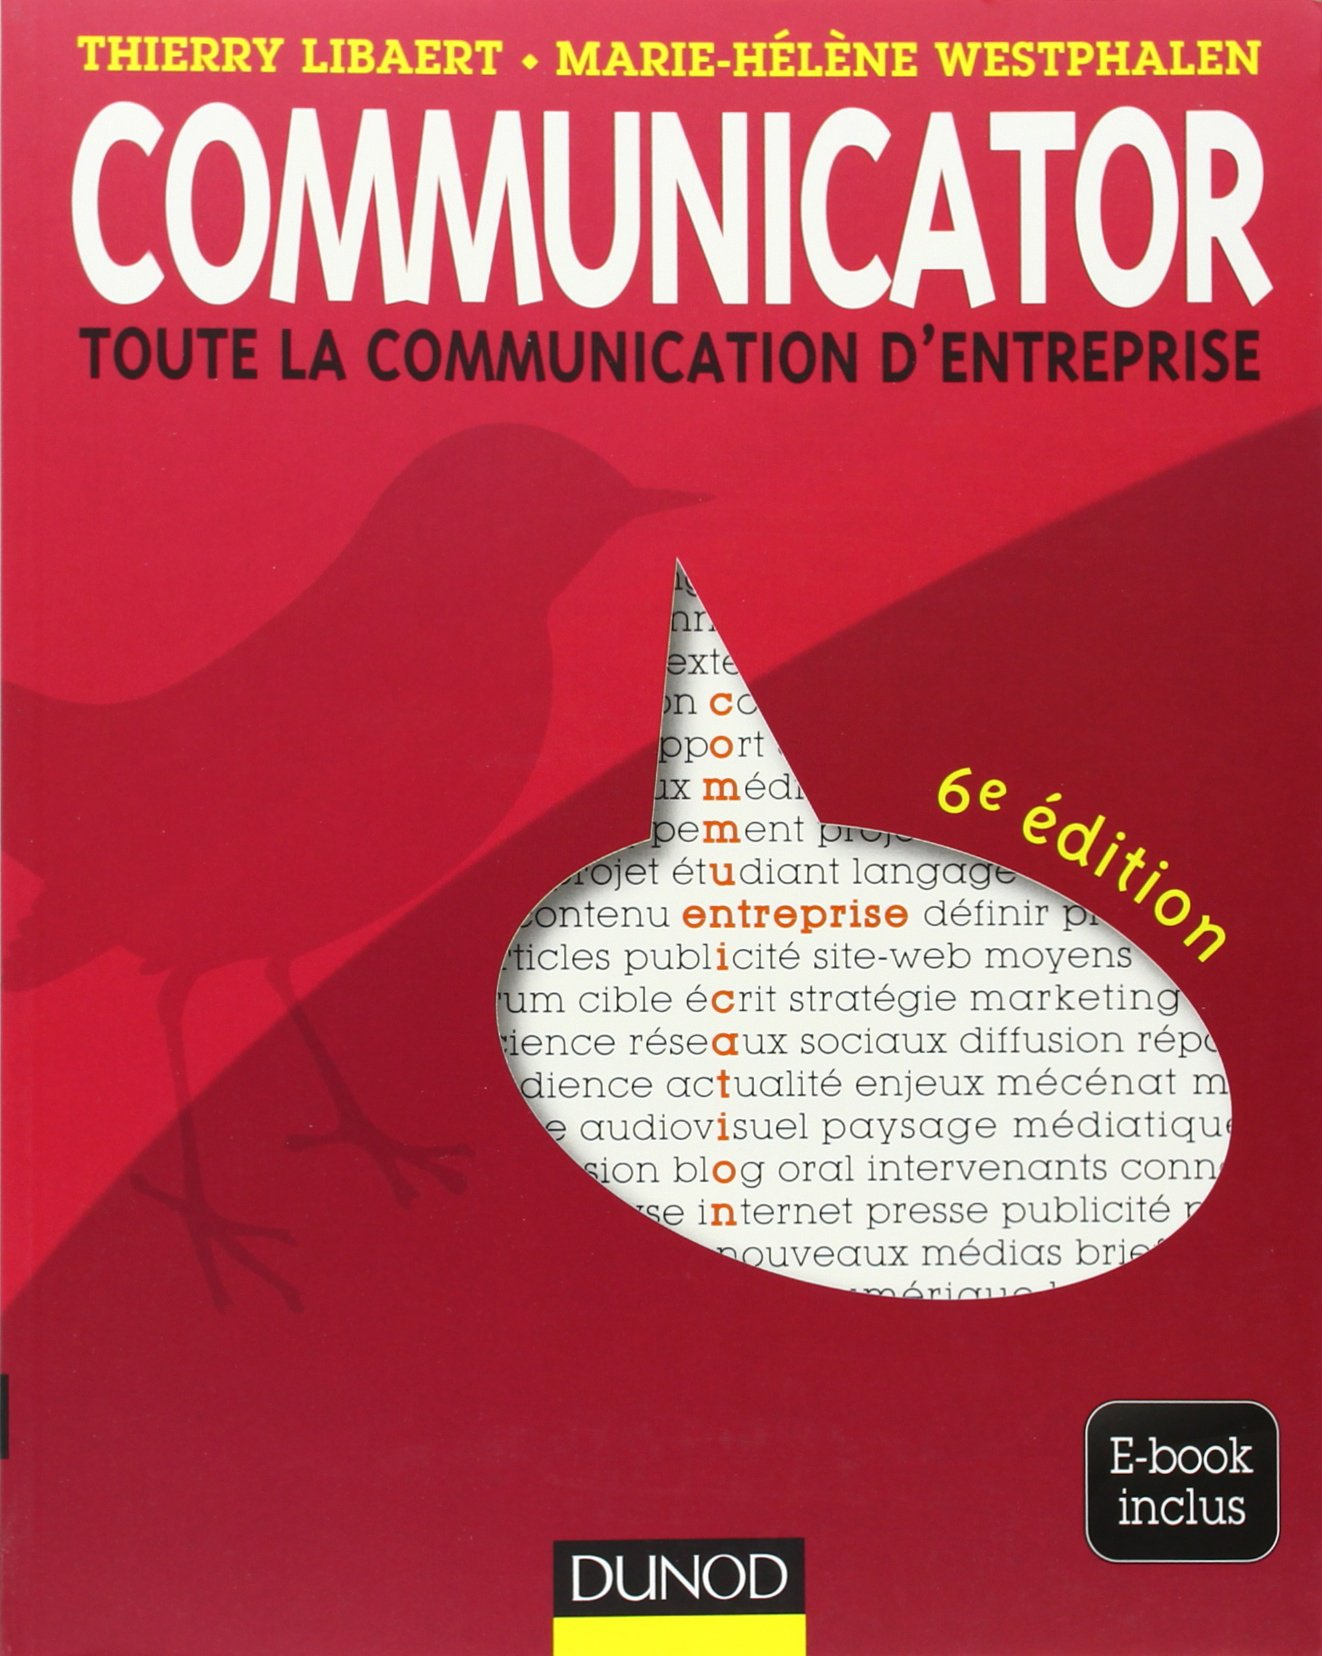 Communicator - Le guide de la communication d'entreprise